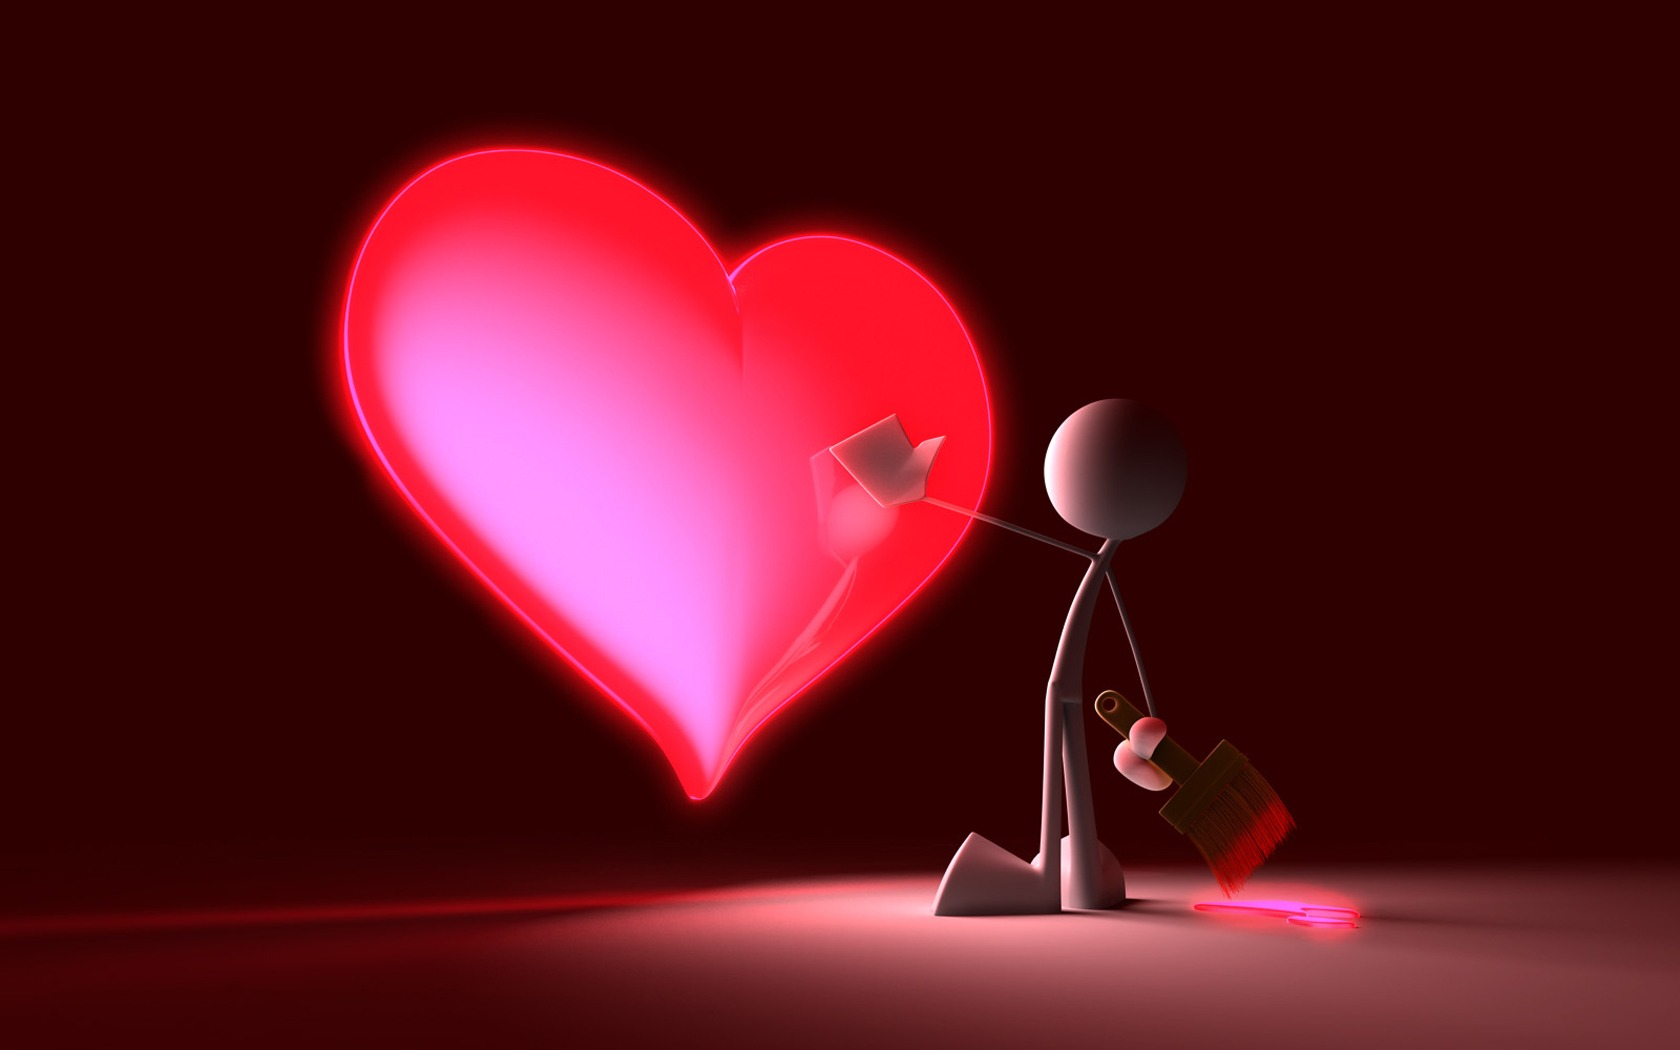 Free 3d Heart, Download Free Clip Art, Free Clip Art on.